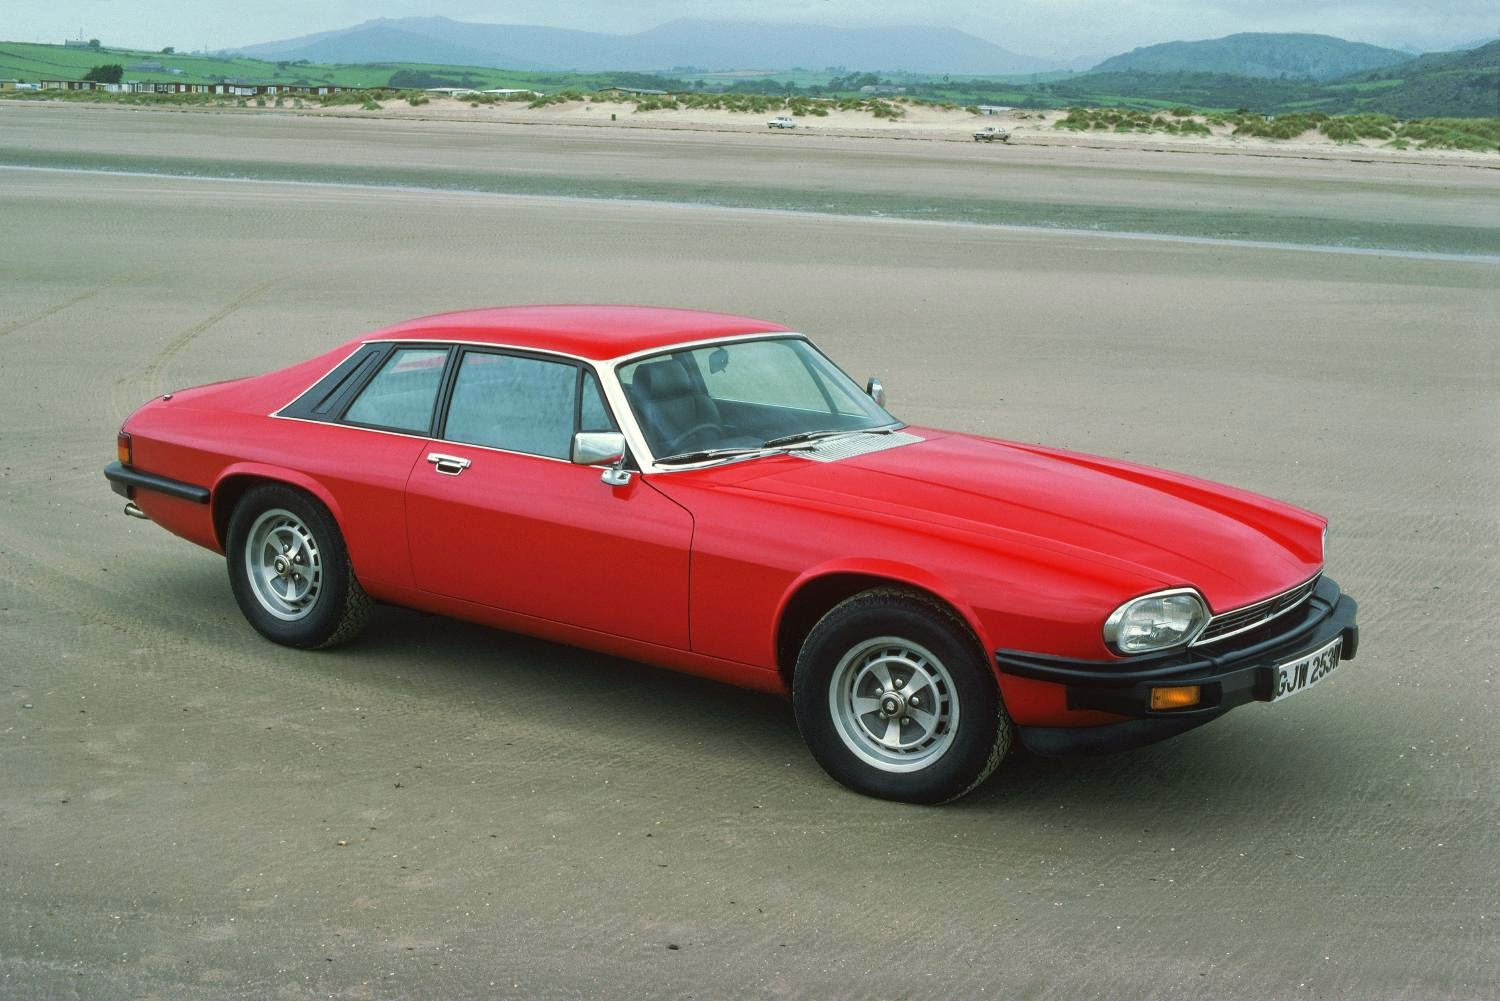 Series 1 Jaguar XJS